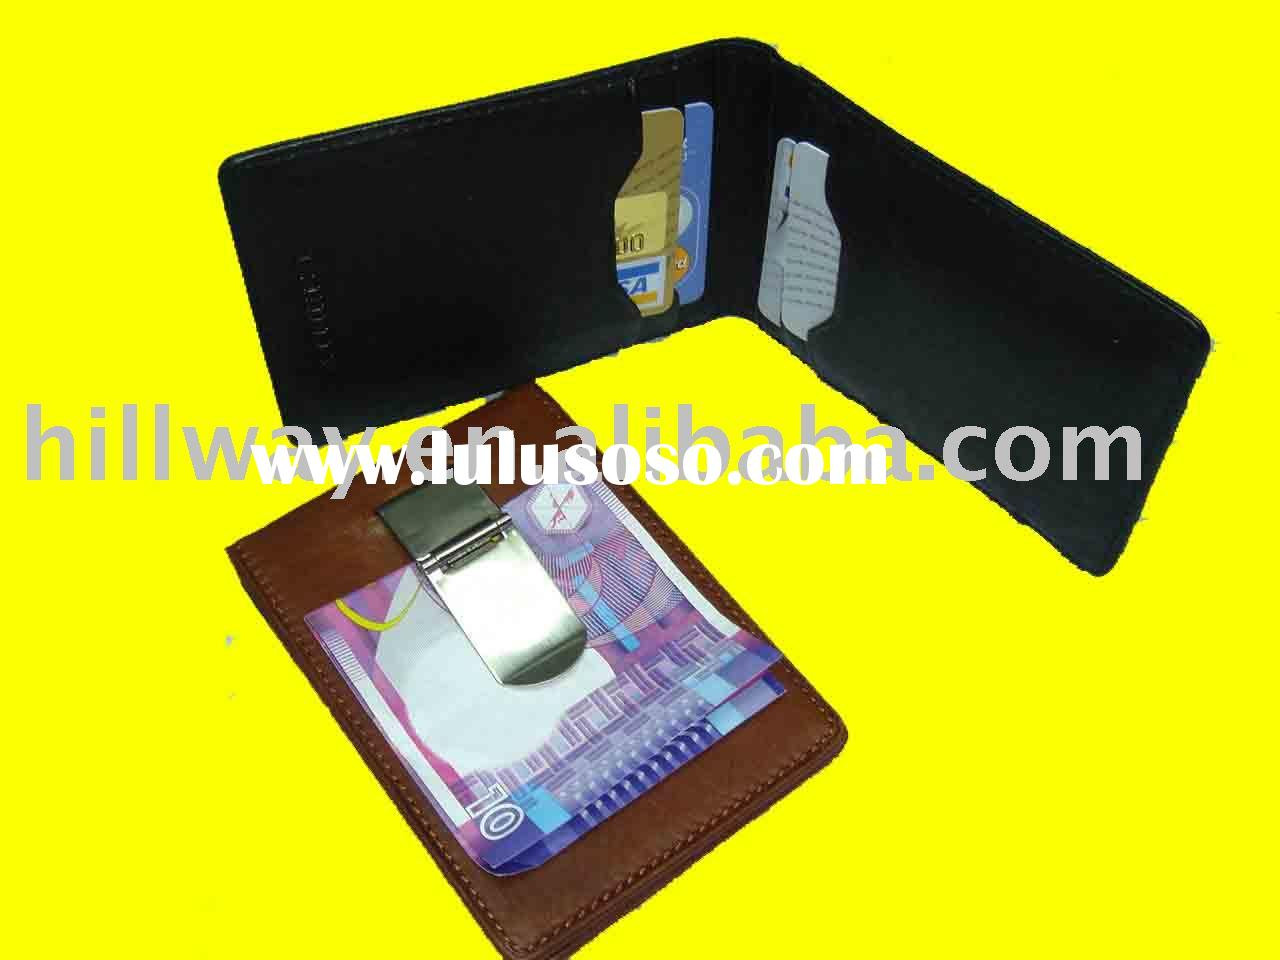 NEW BIFOLD METAL MONEY CLIP CARD HOLDER ID WALLET